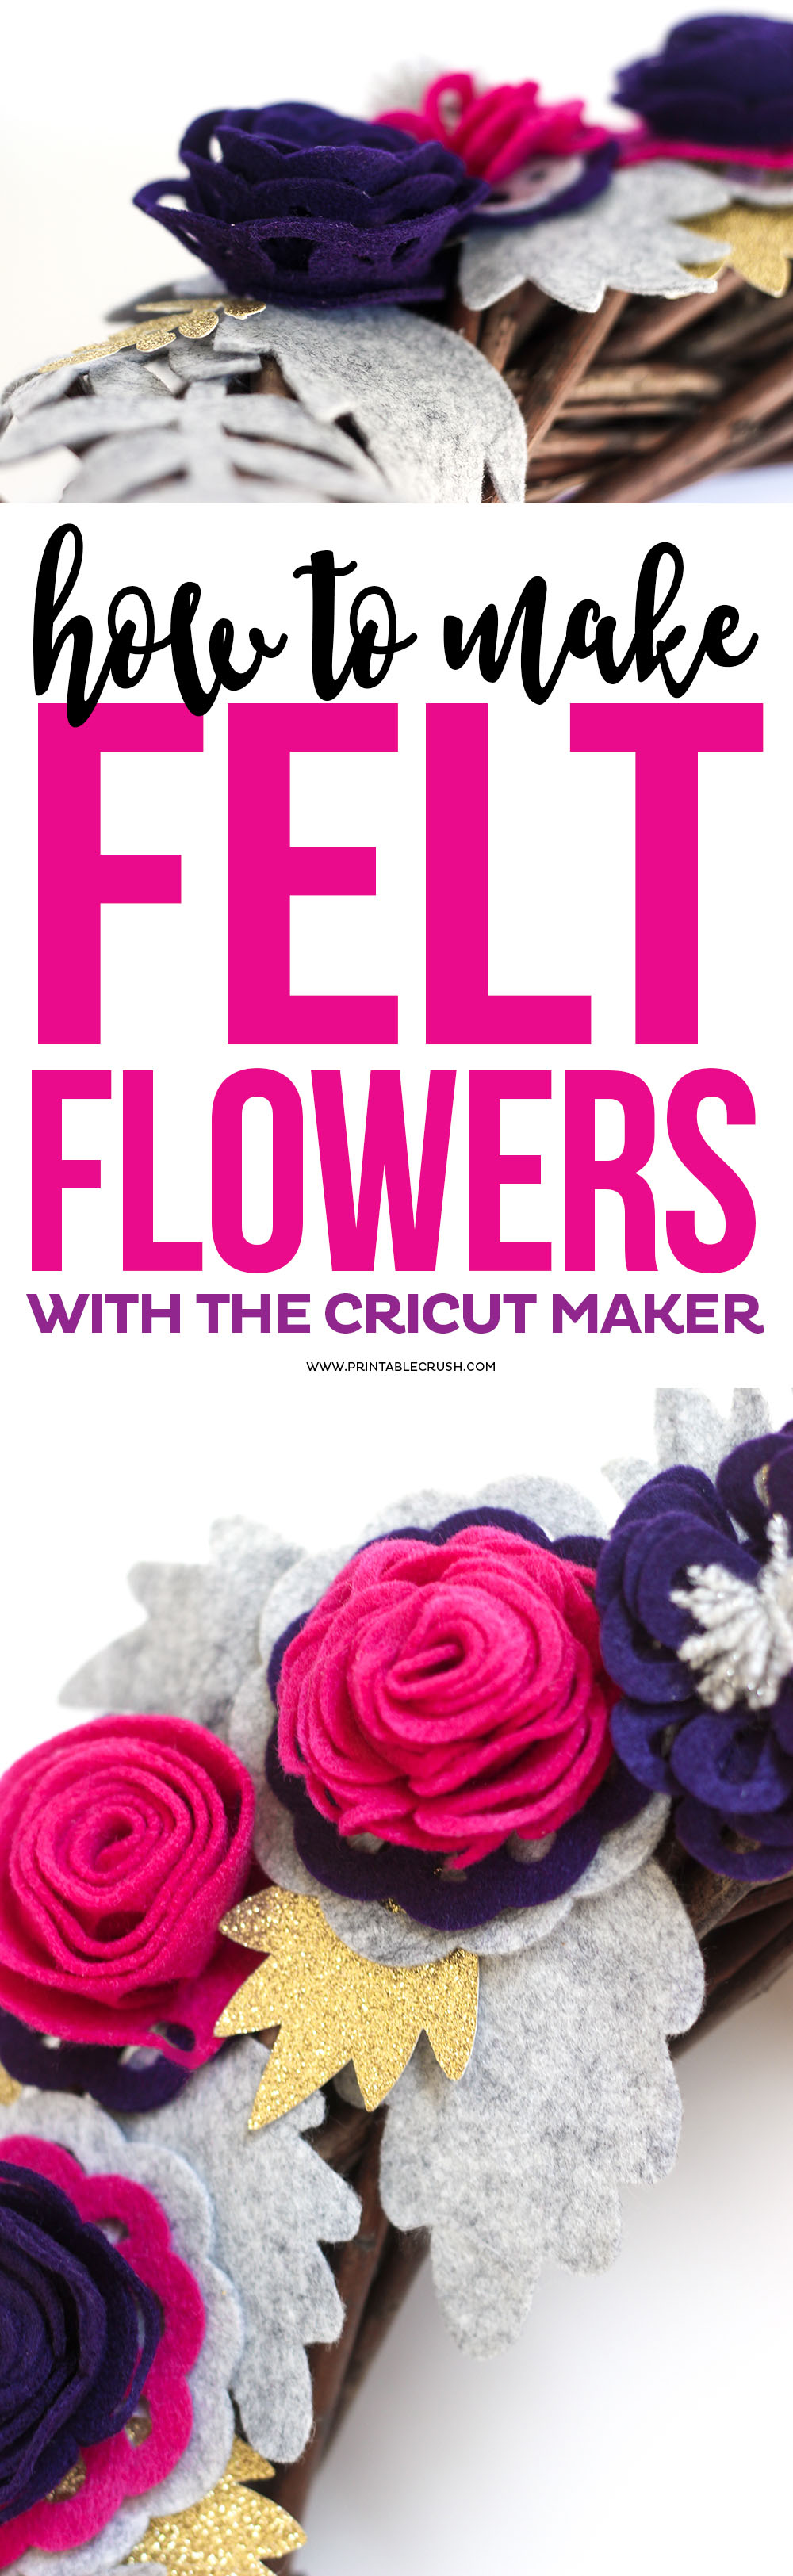 Learn how to make How to Make Felt Roses with the Cricut Maker to create a beautiful fall wreath or any other type of decor you would like!